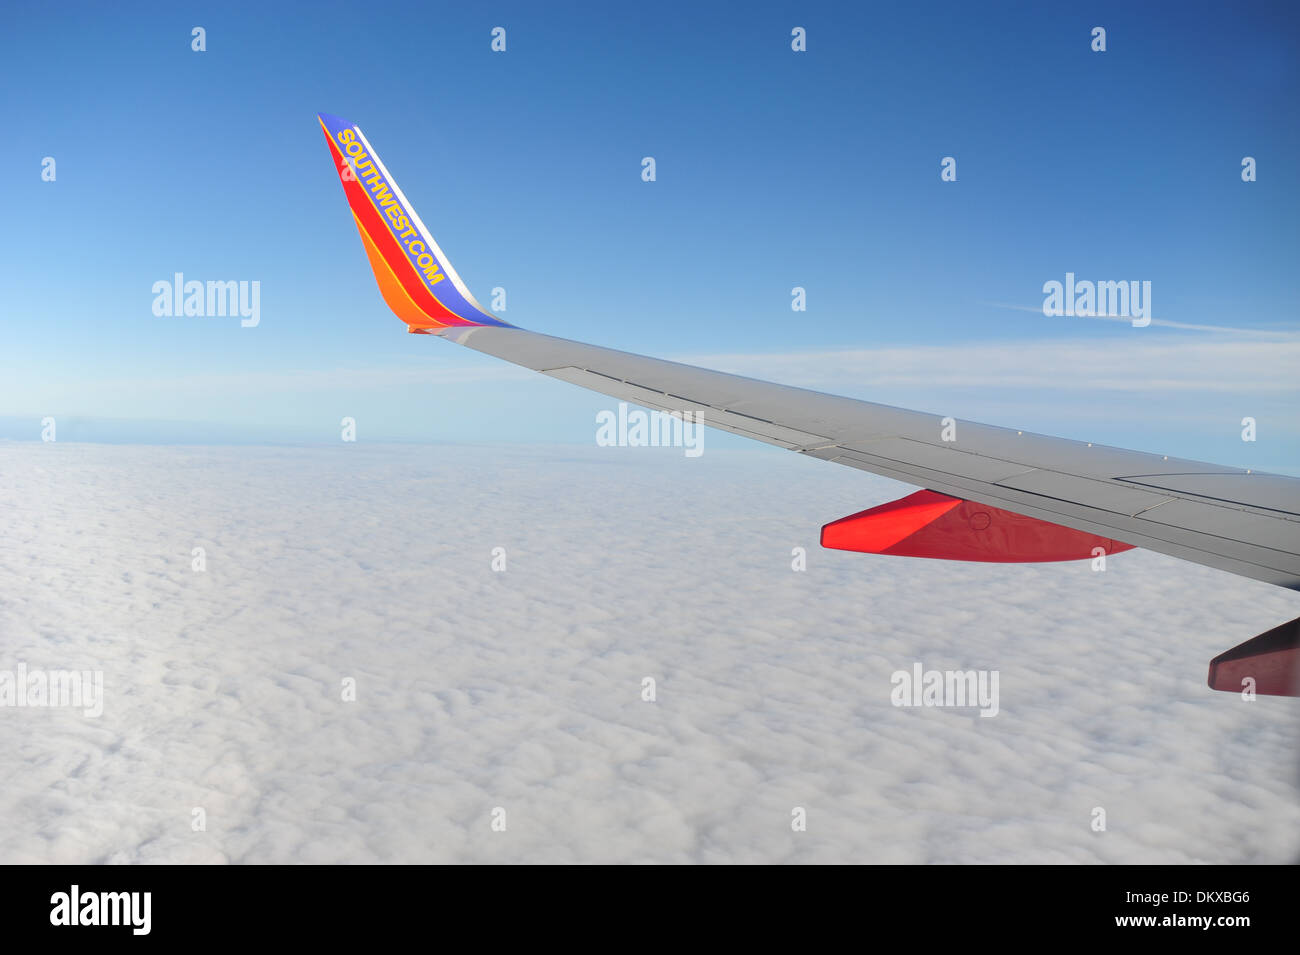 southwest-airlines-wing-with-winglet-on-